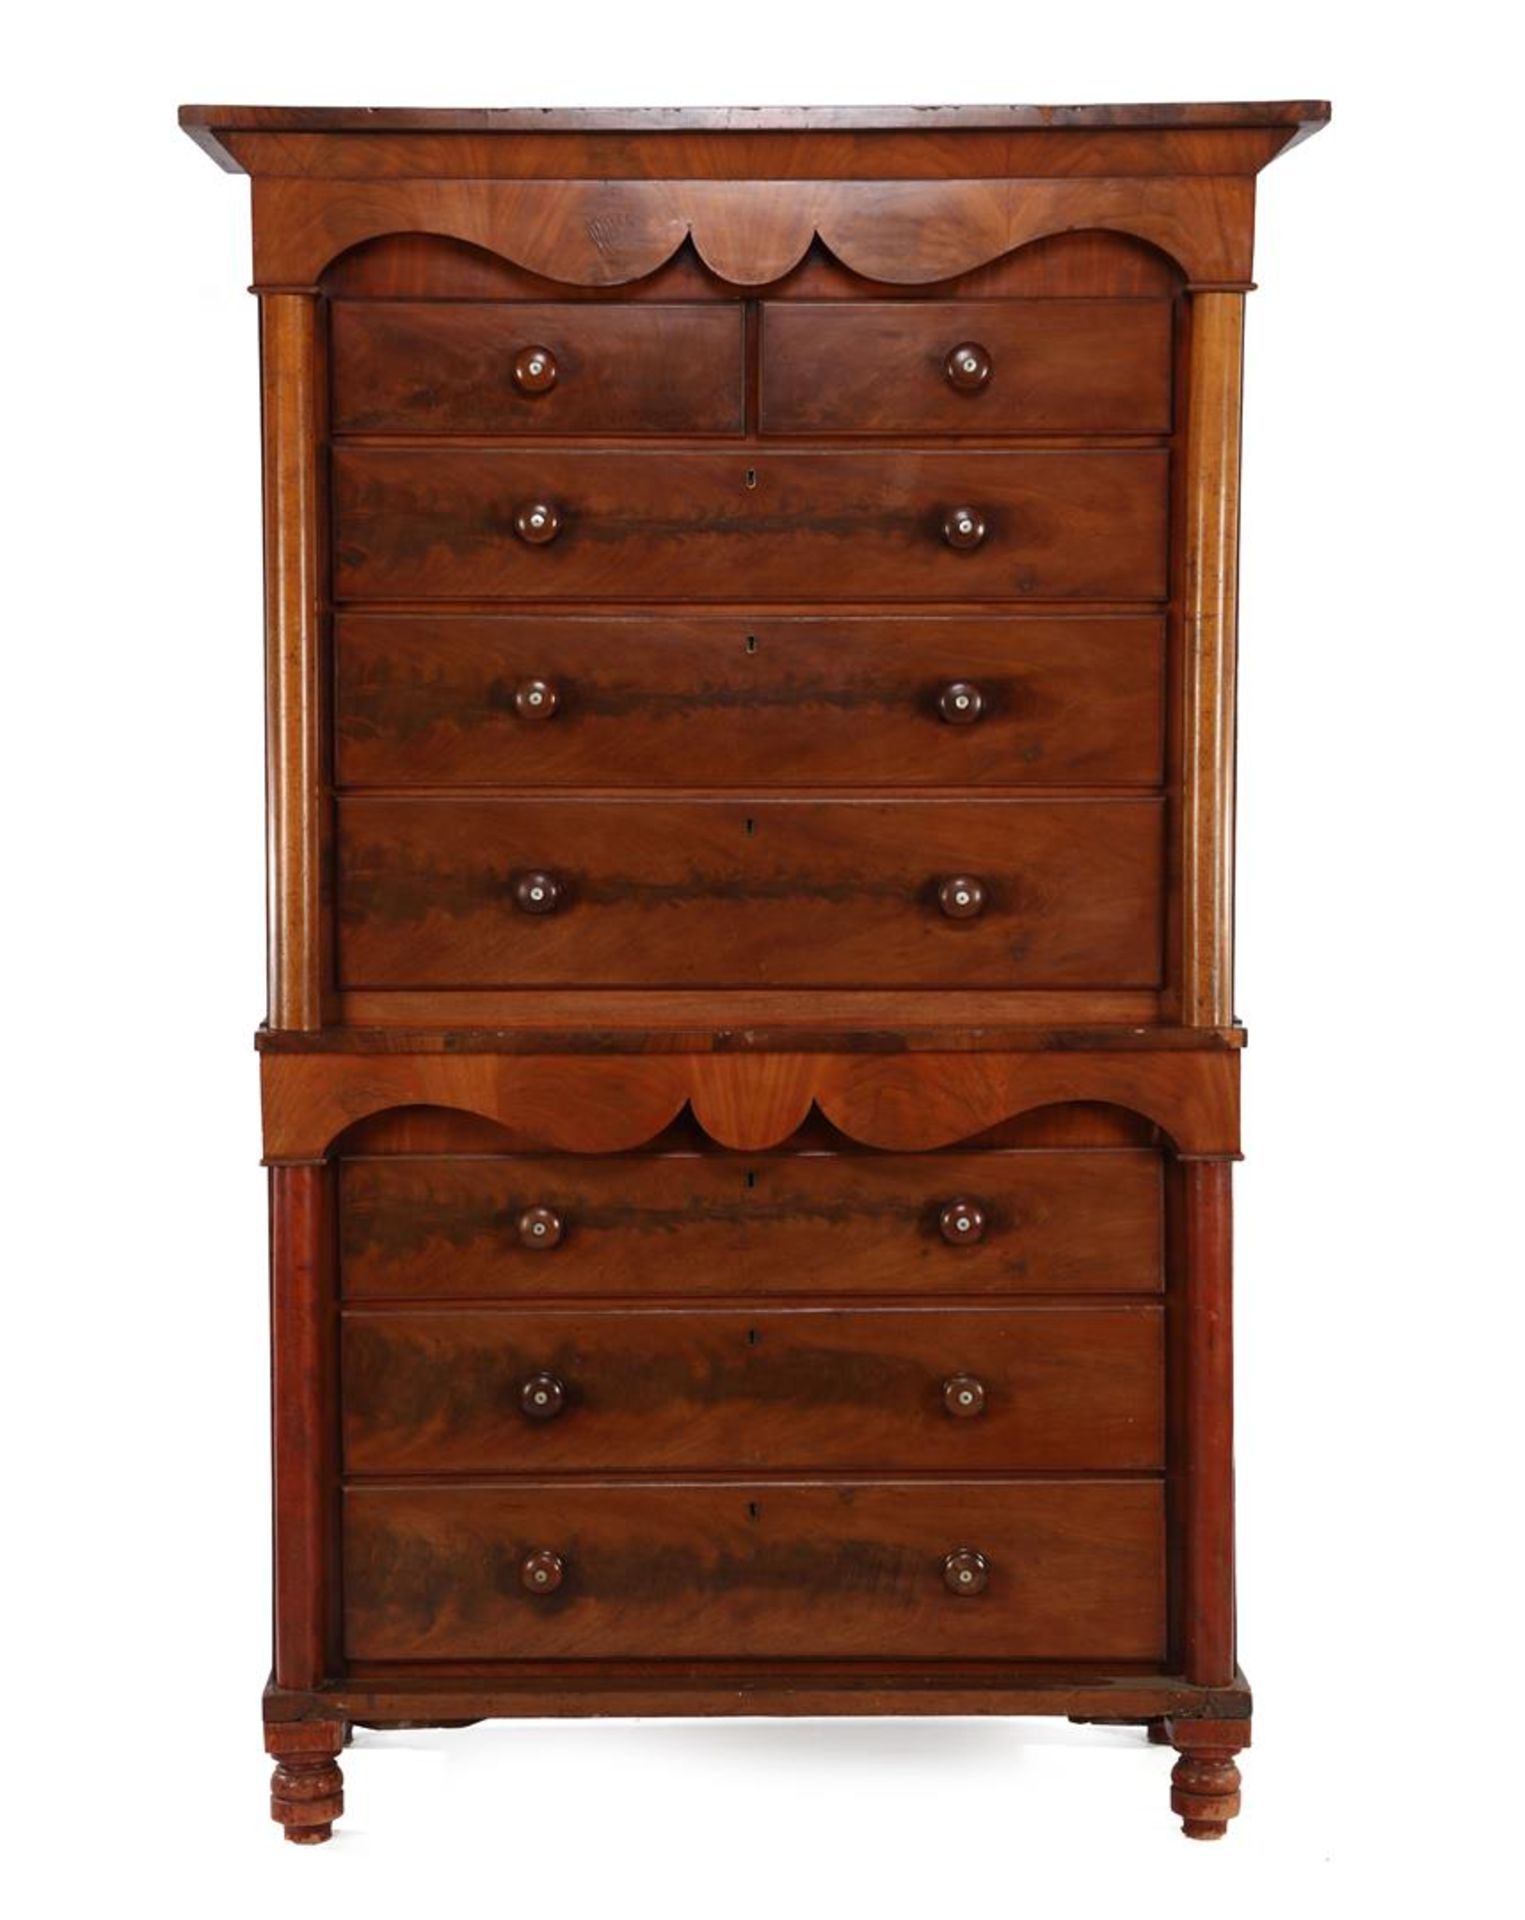 2-part English chest of drawers, mahogany veneer with columns